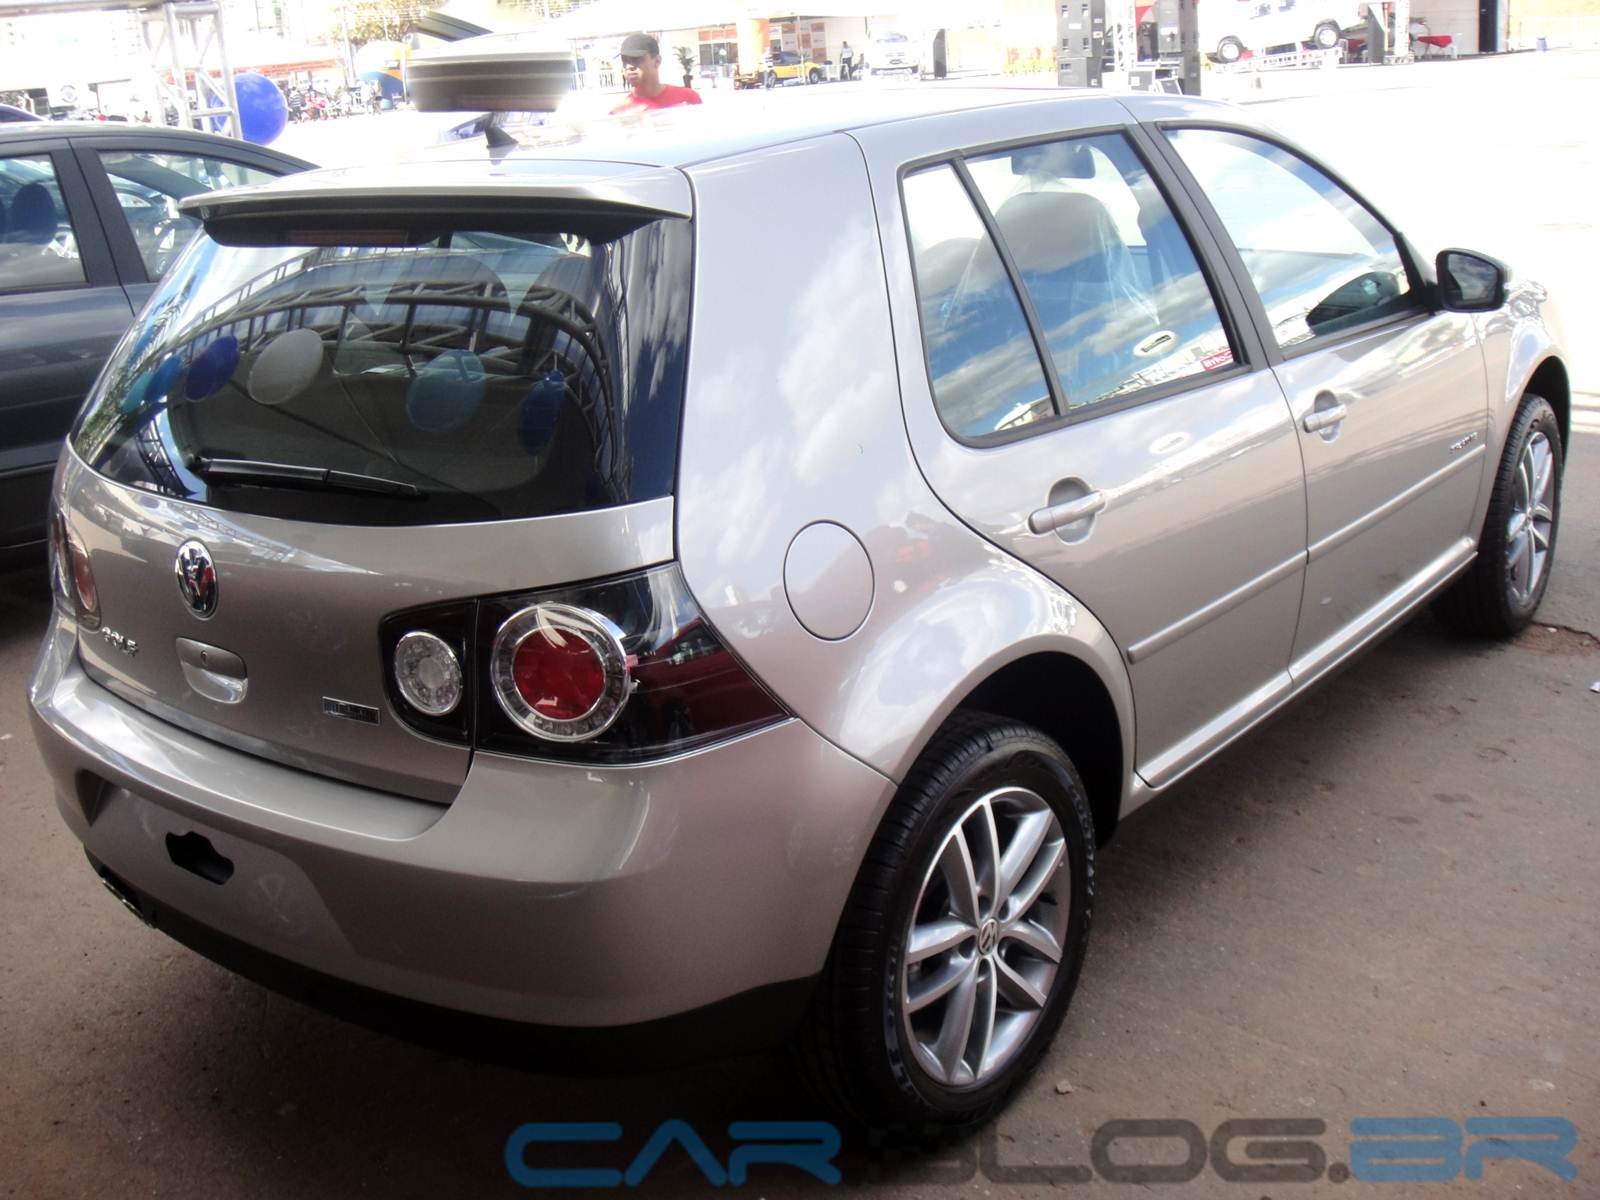 volkswagen golf sportline 2013 mk4 fotos e pre os car blog br. Black Bedroom Furniture Sets. Home Design Ideas